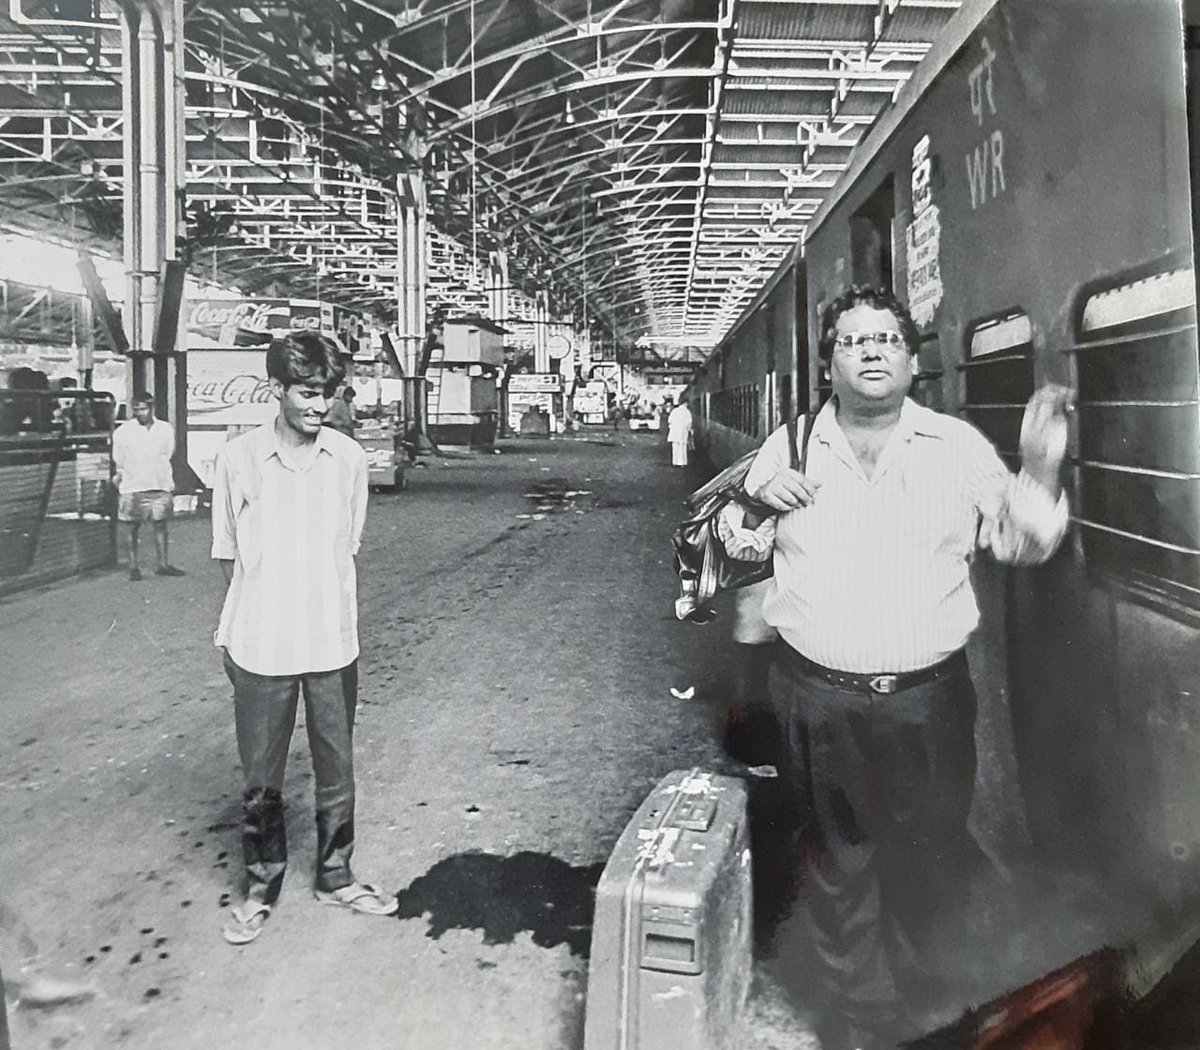 I came to mumbai to become an actor on 9th Aug 1979 by Paschim Express.10th Aug was first morning in Mumbai.Mumbai gave Work,Friends,Wife, Kids,Home, Love,Warmth, Struggle,Success,Failures & Courage to live Happily.Good Morning Mumbai & All who gave me more than I dreamt . Thx🙏